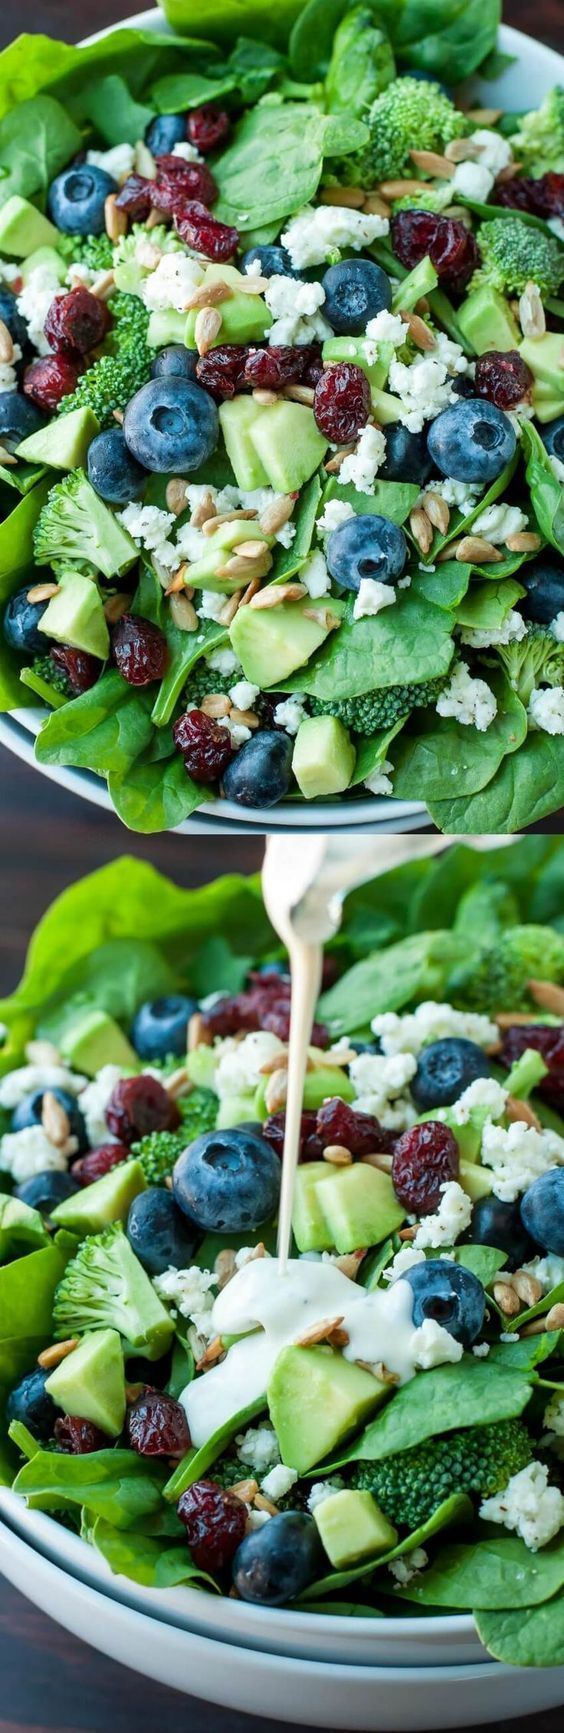 Channeling the flavors of some of some of my favorite restaurant salads, this tasty Blueberry Broccoli Spinach Salad - swap the blueberries for apples or mandarin orange segments for a winter-friendly seasonal dish!